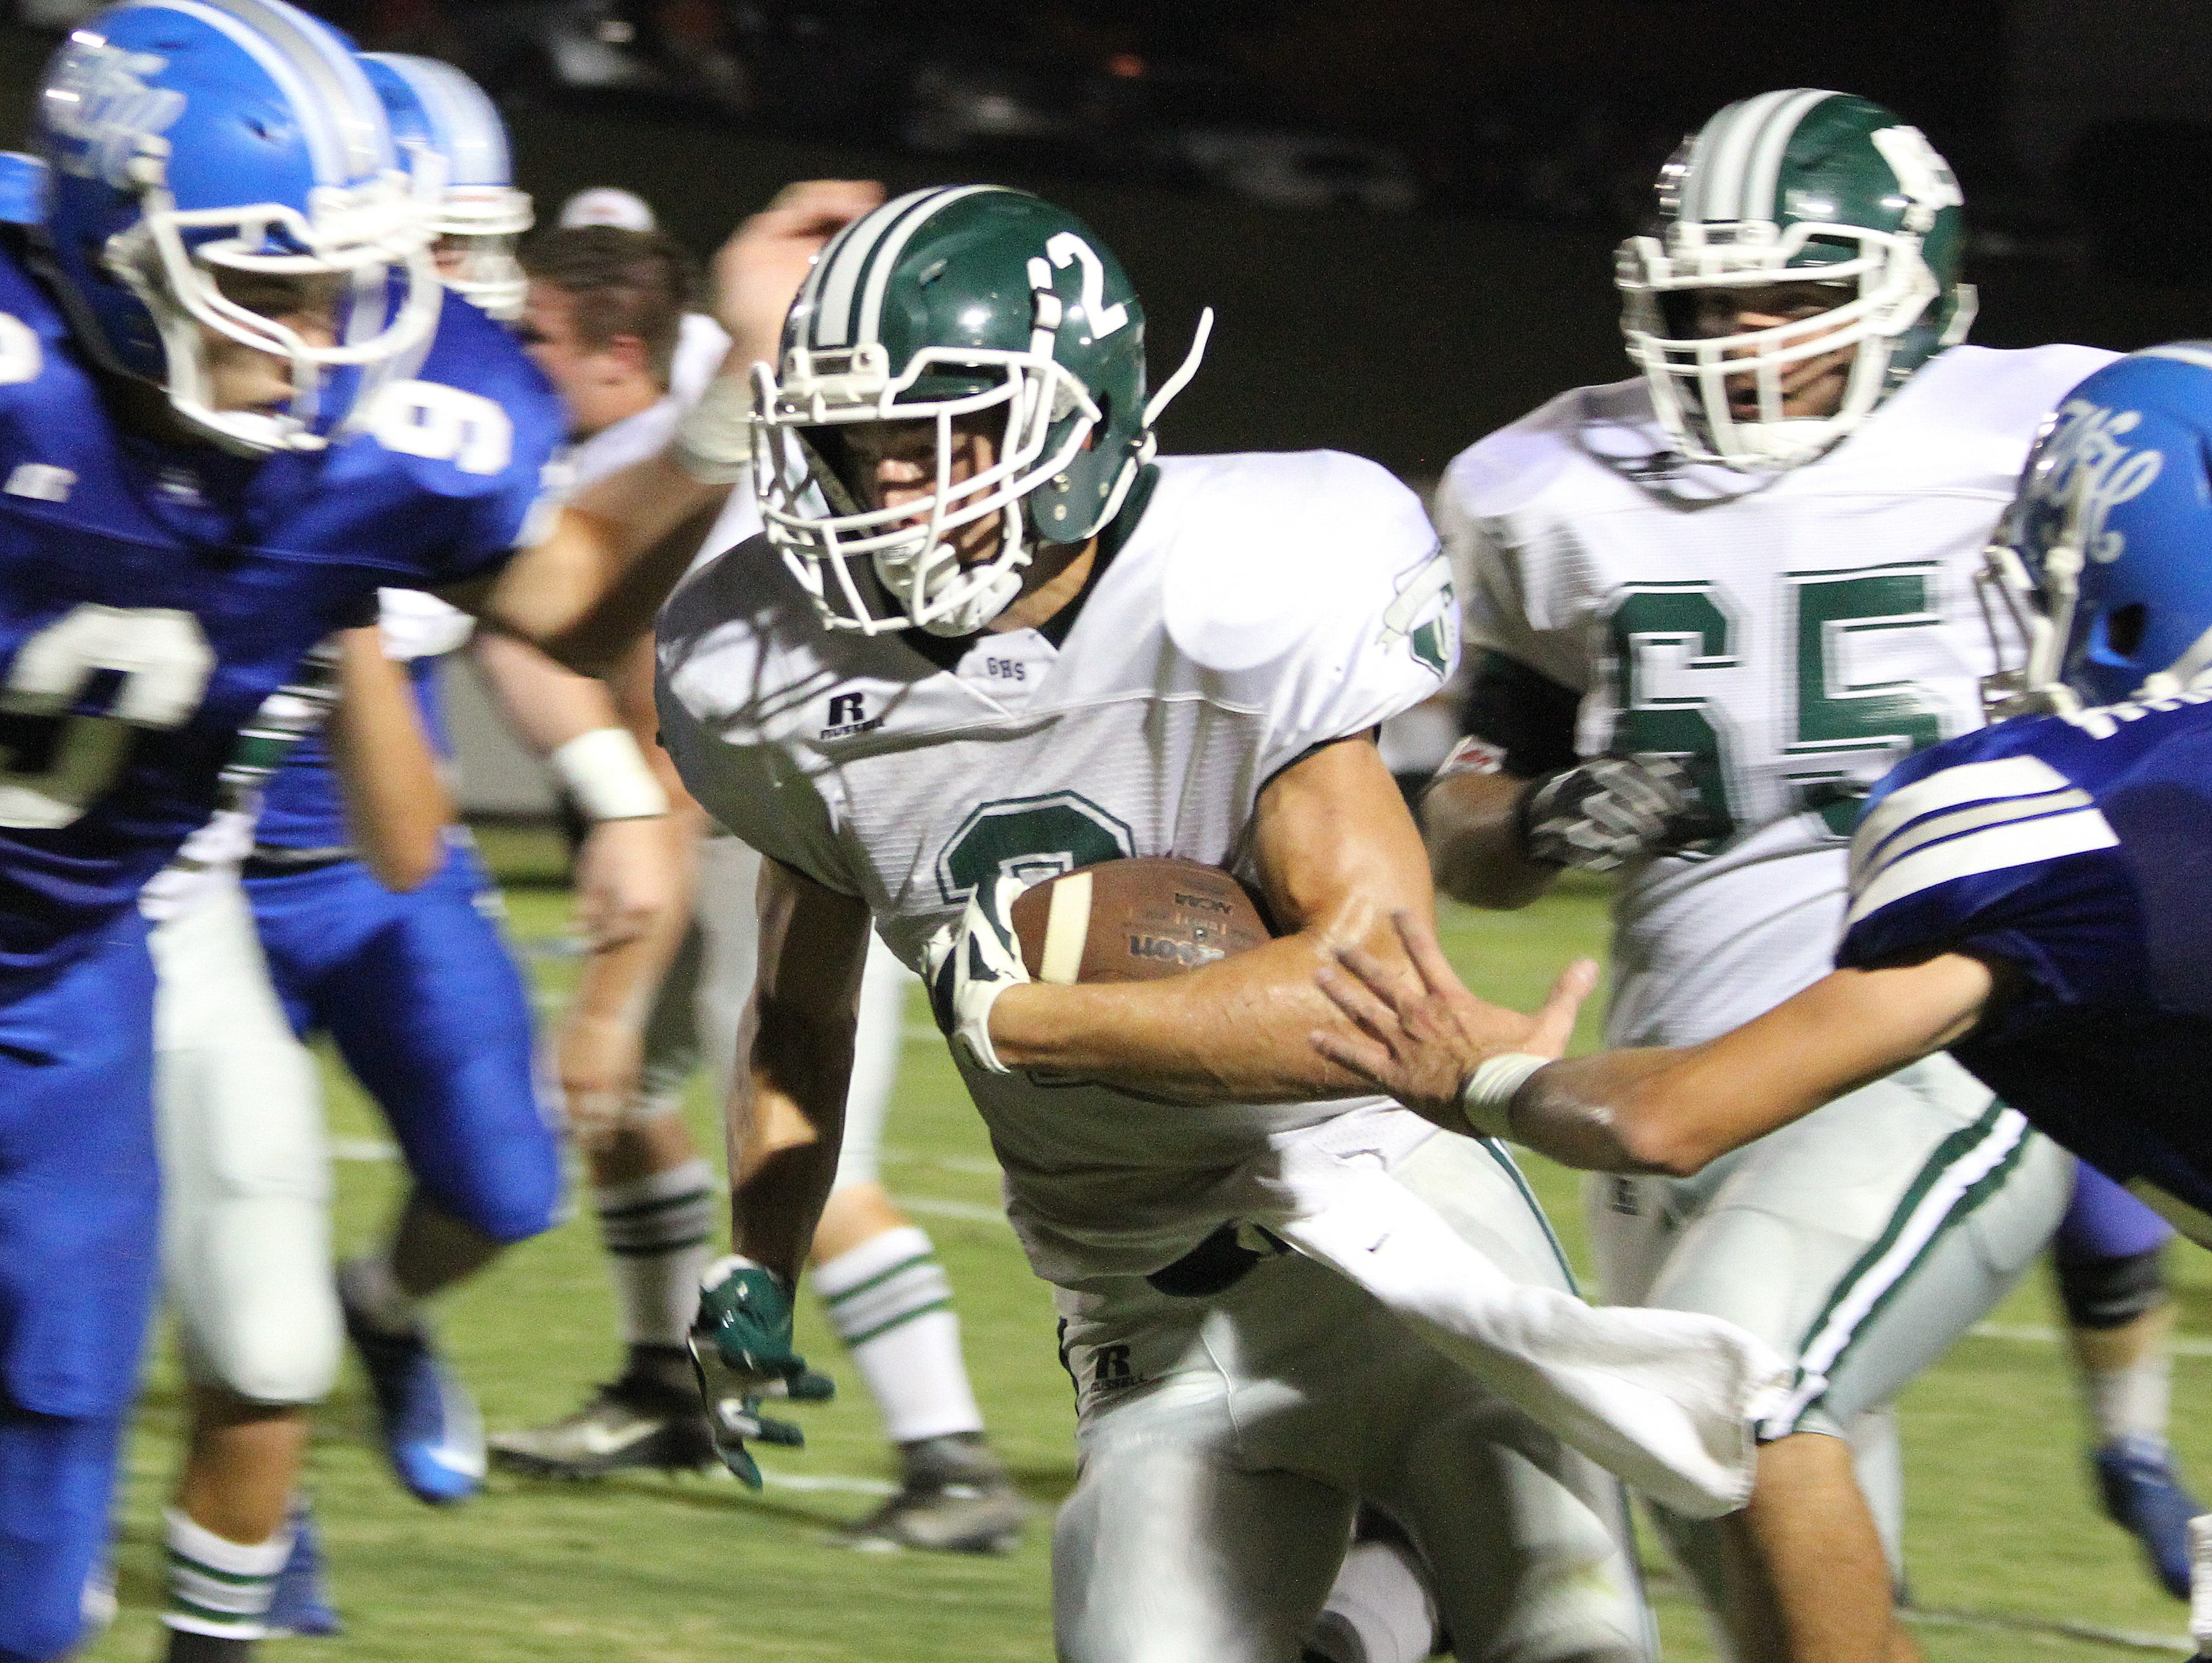 The Greenbrier Bobcats defeated the White House Blue Devils in their Friday contest.